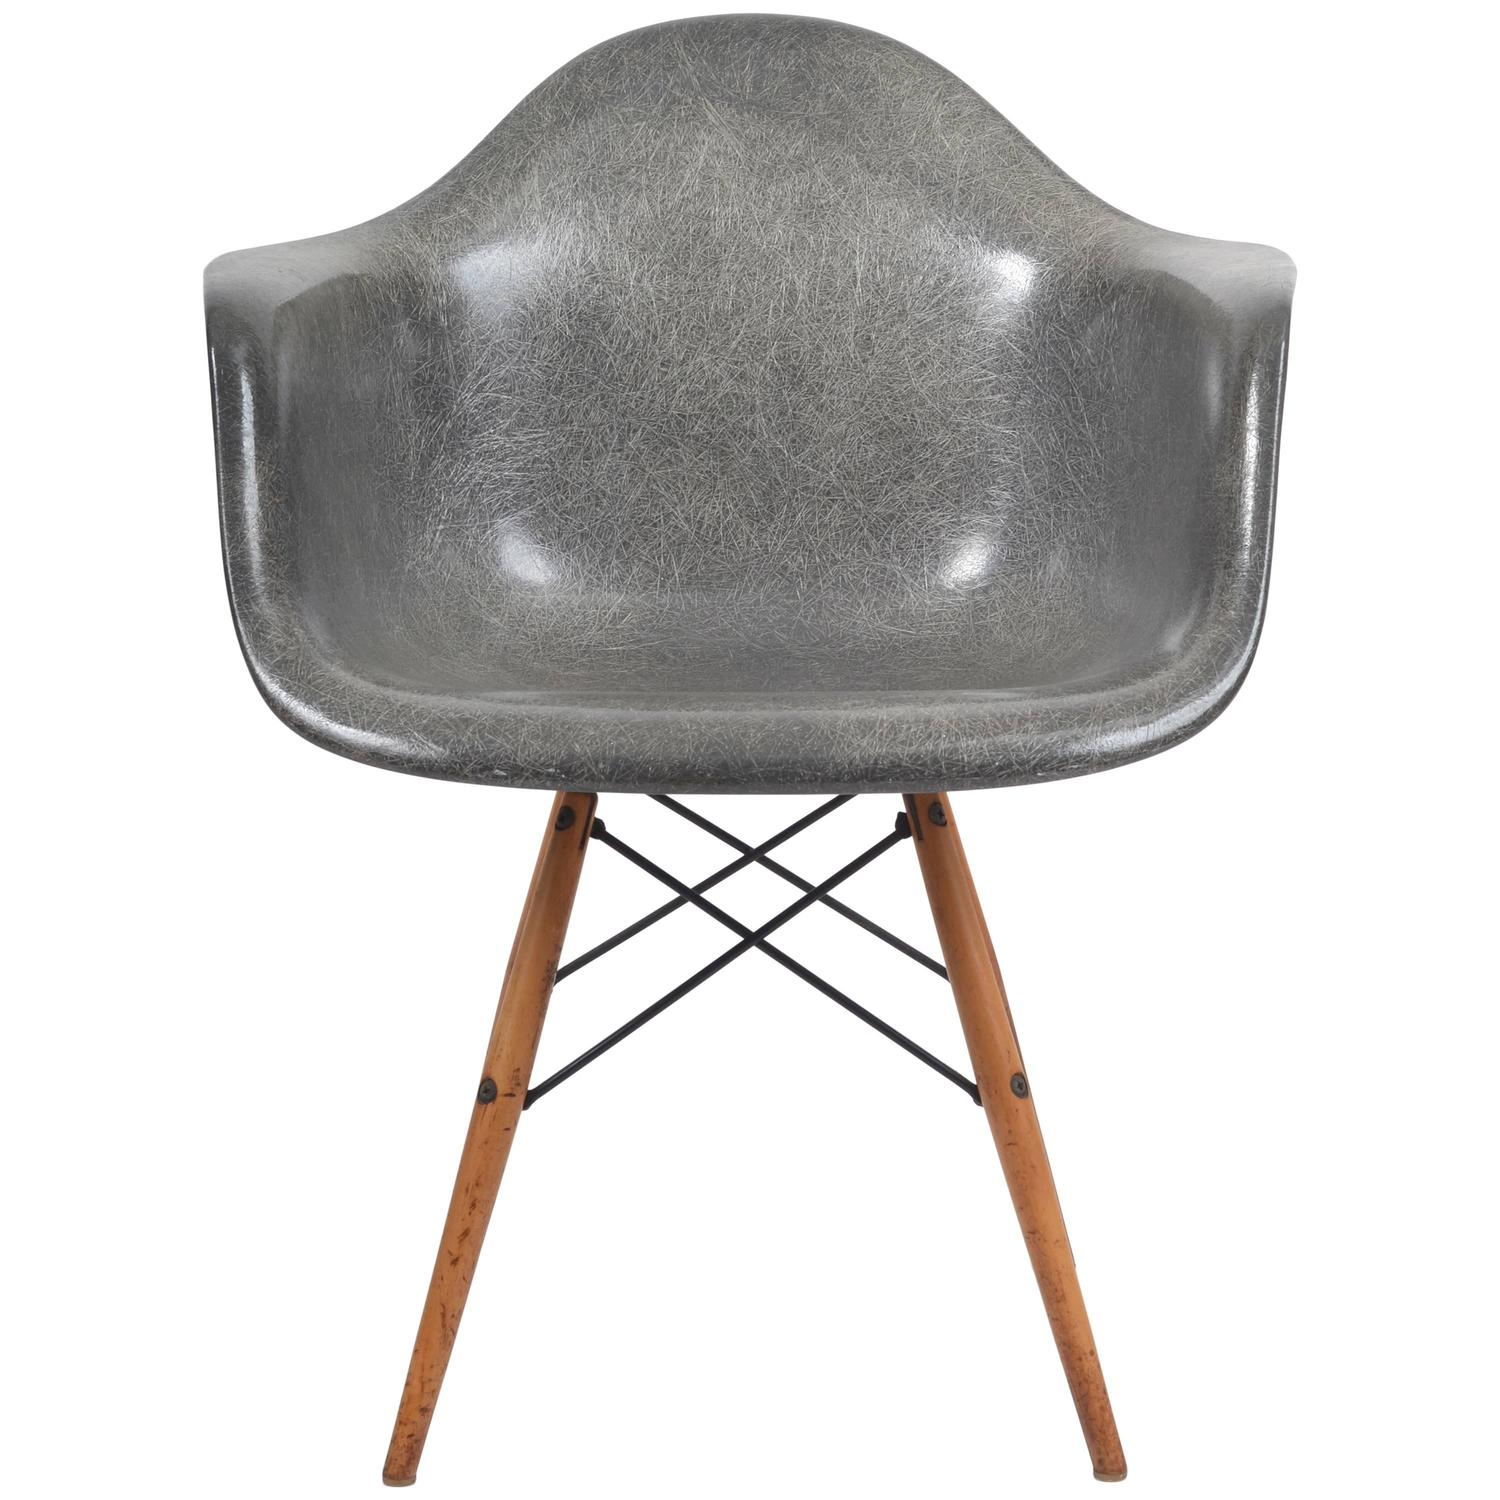 1950s Herman Miller Grey Zenith Manufactured Rope Edge Fiberglass Eames  Chair